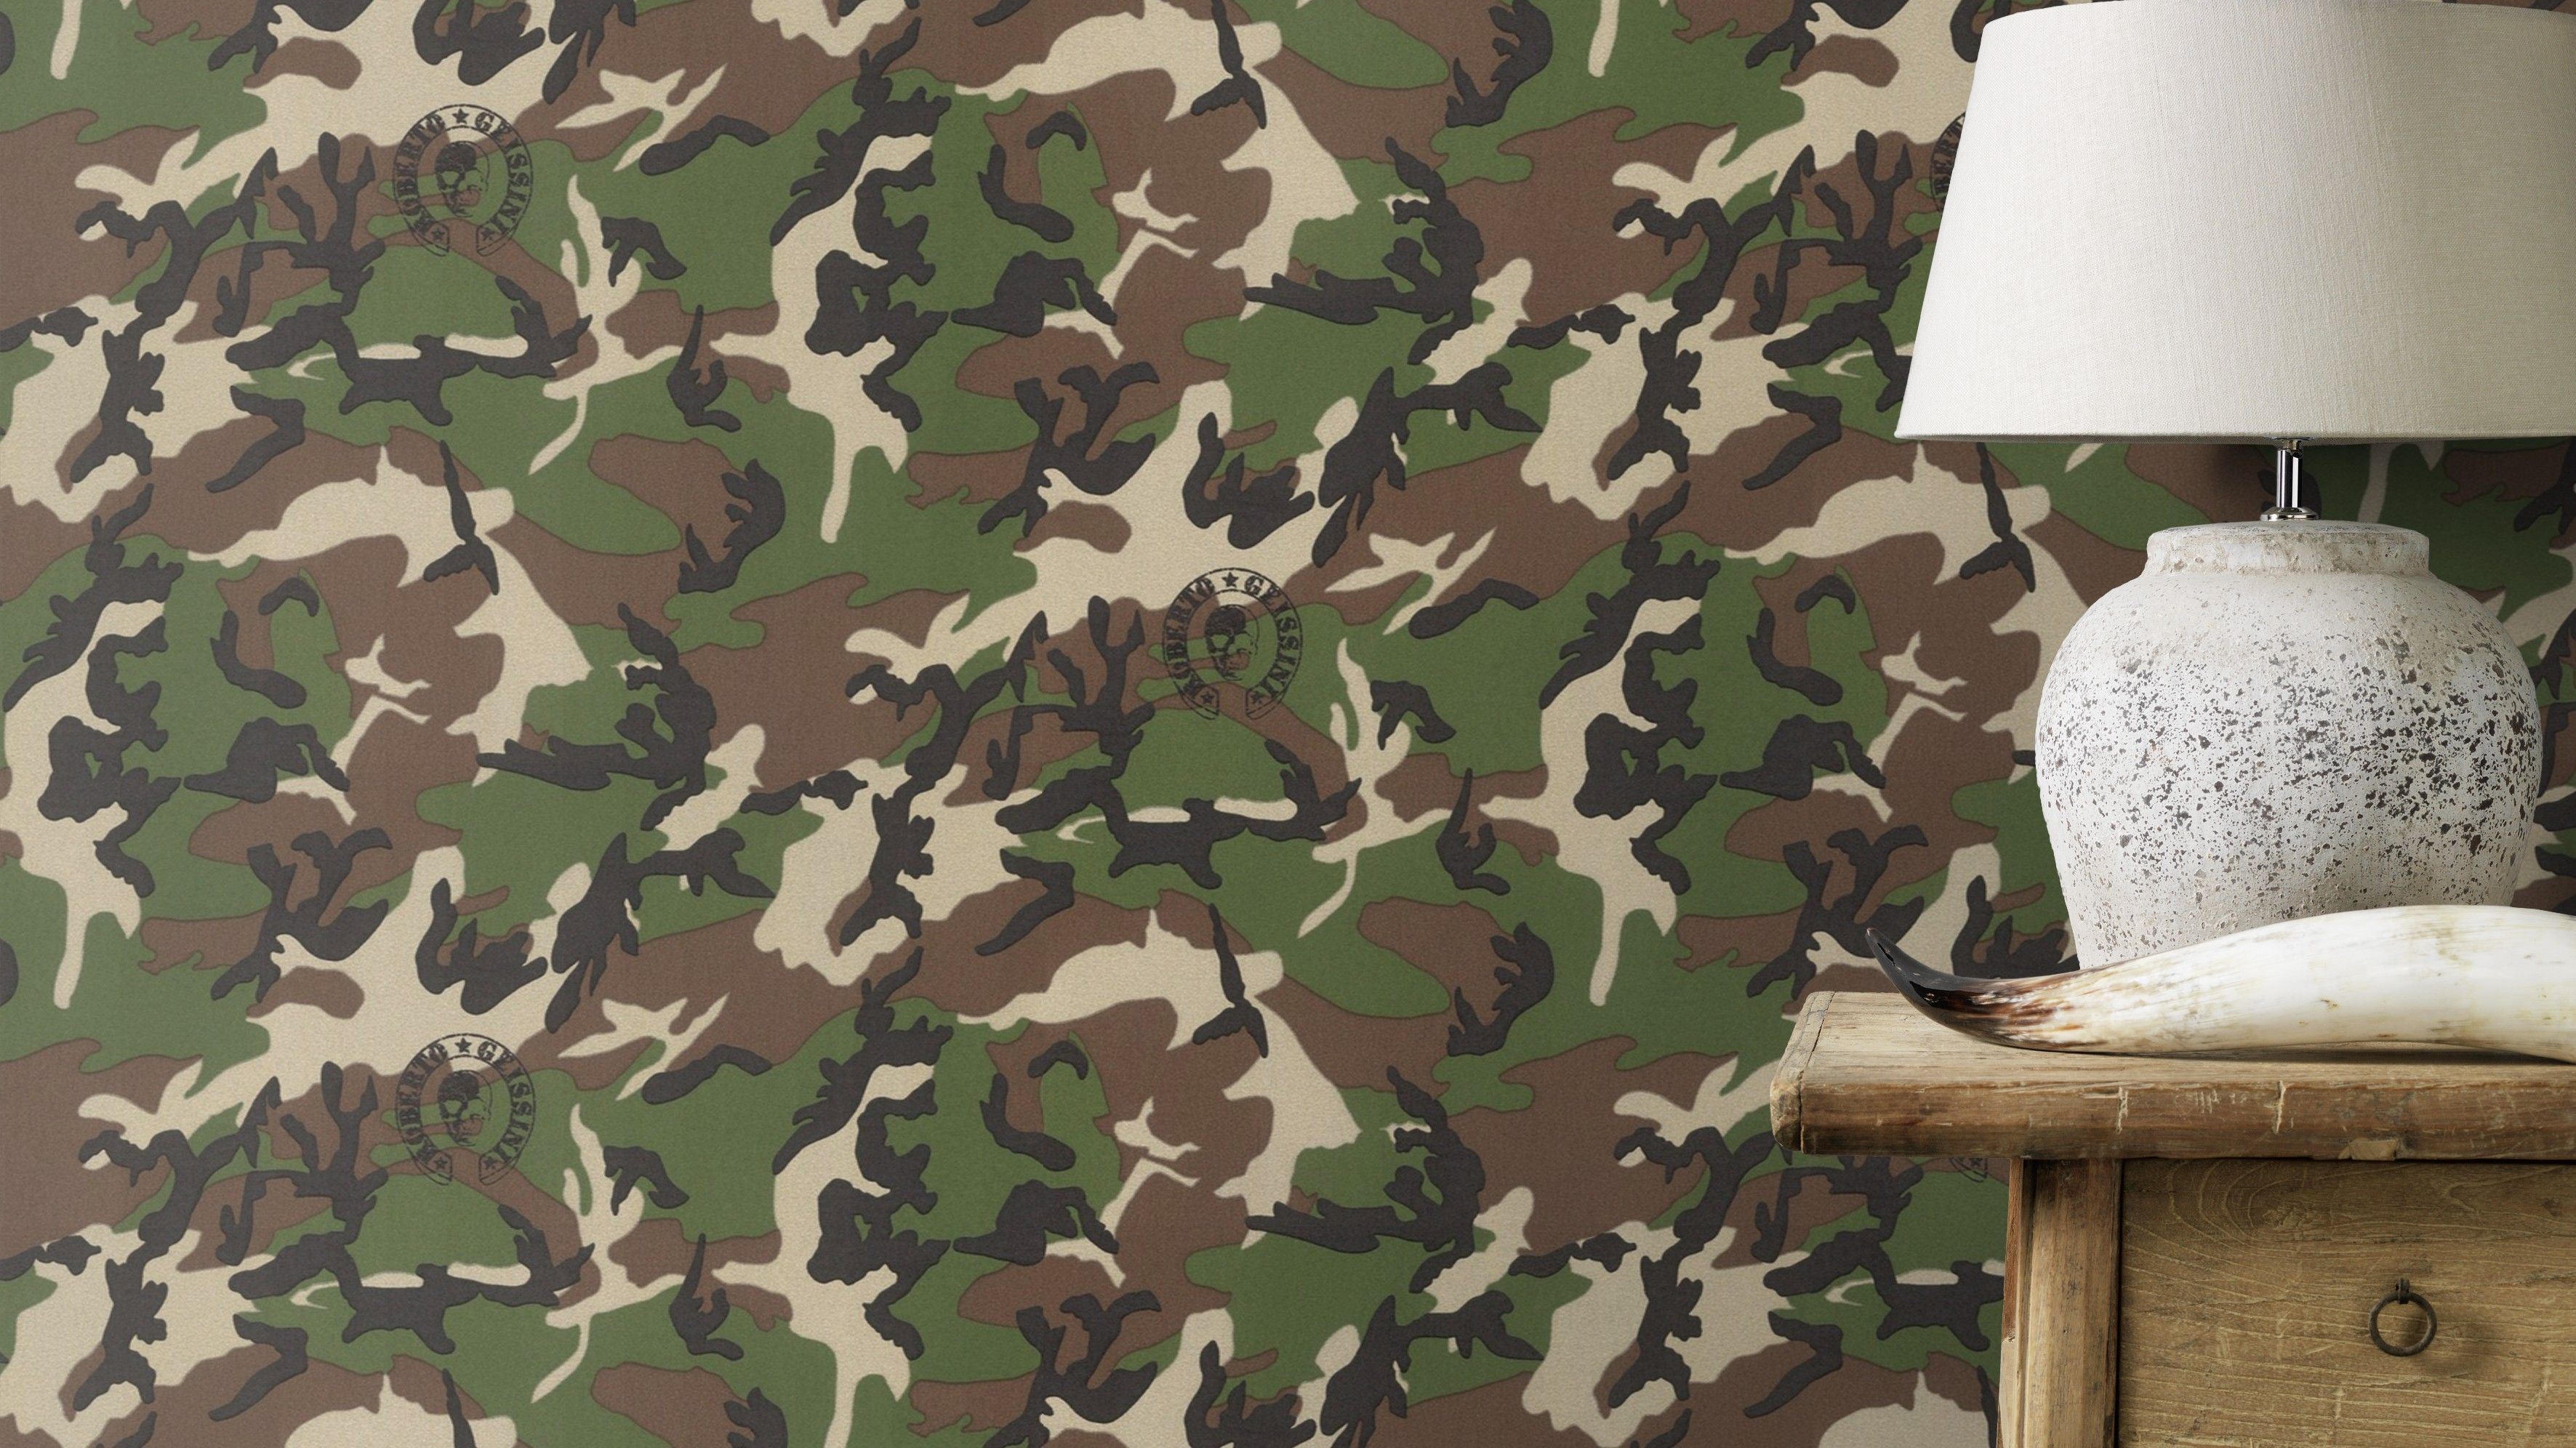 abae5d5f317b6e06a72dbcfb4282c338 - Camouflage Tapete